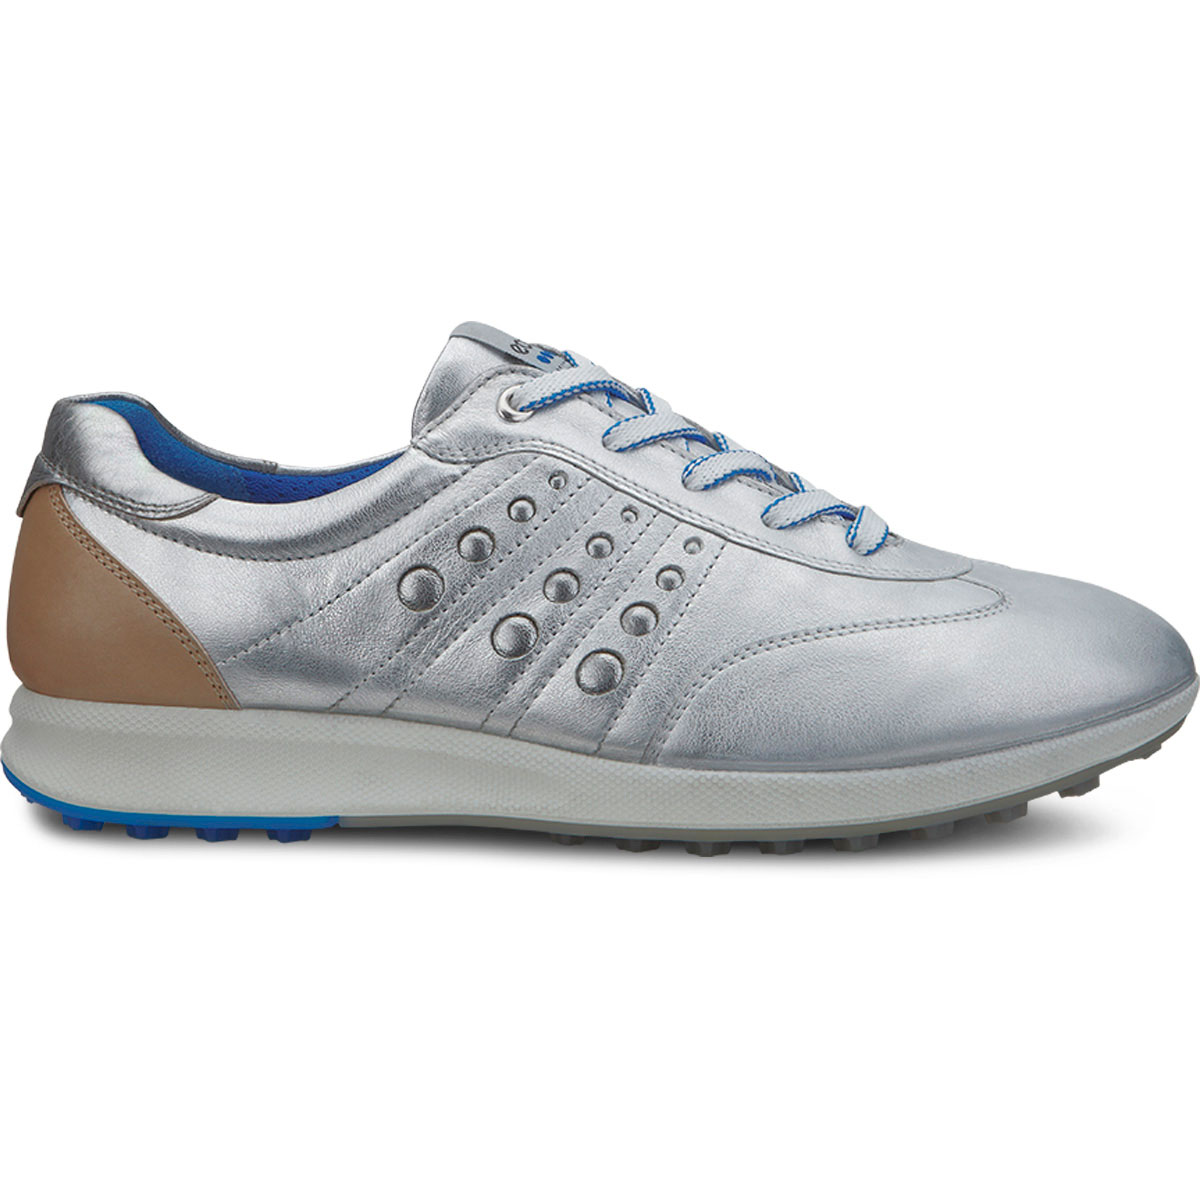 Are Ecco Street Golf Shoes Waterproof